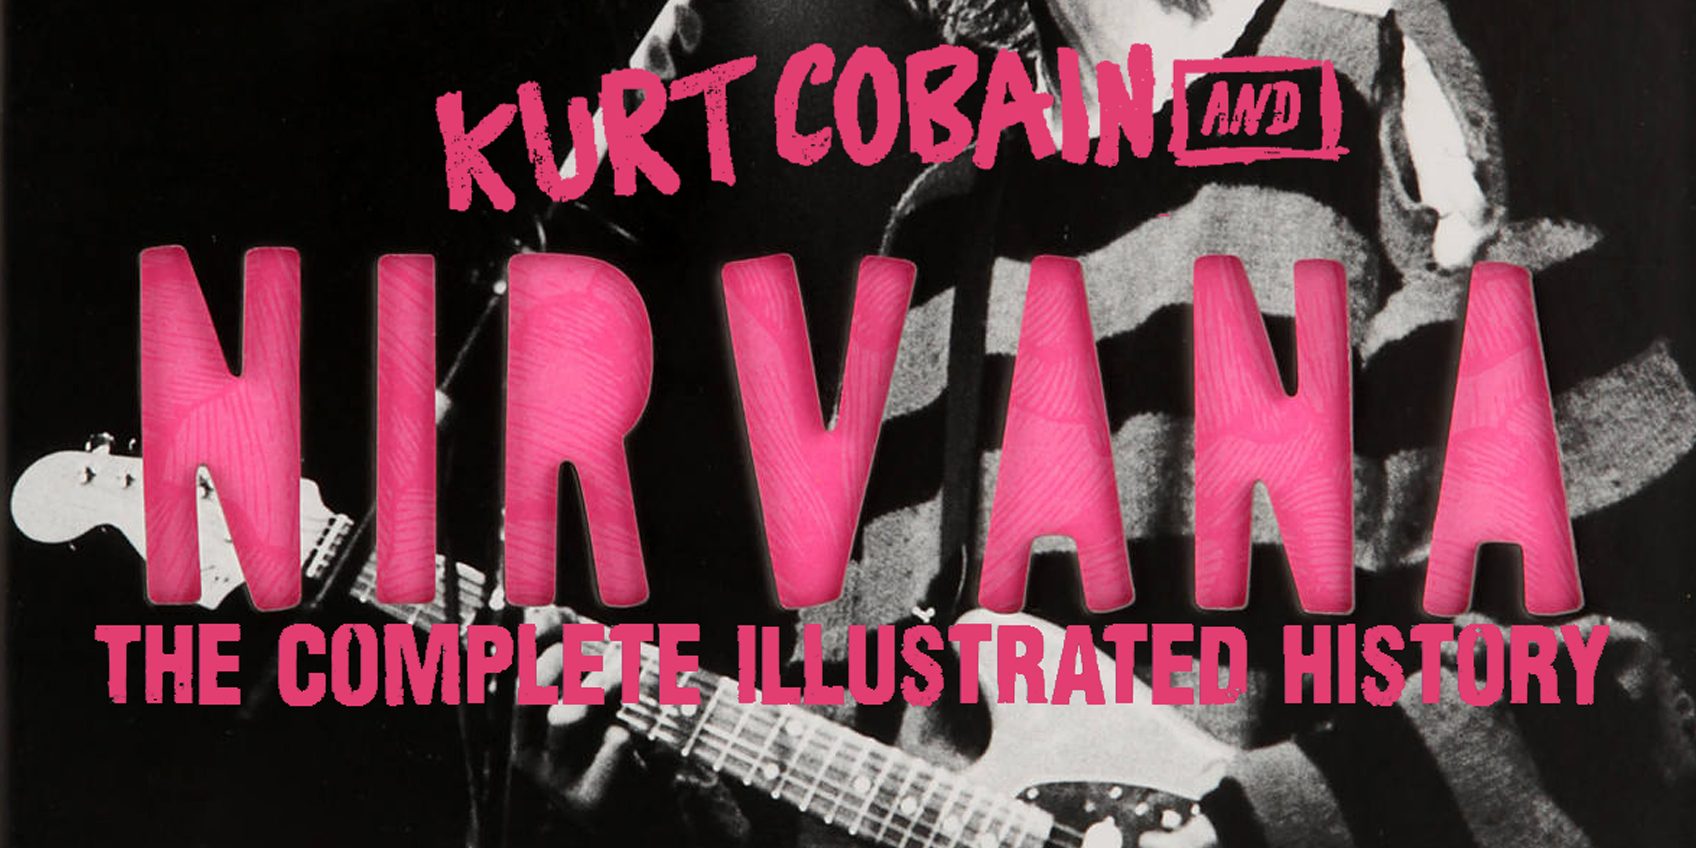 Kurt Cobain and Nirvana – The Complete Illustrated History